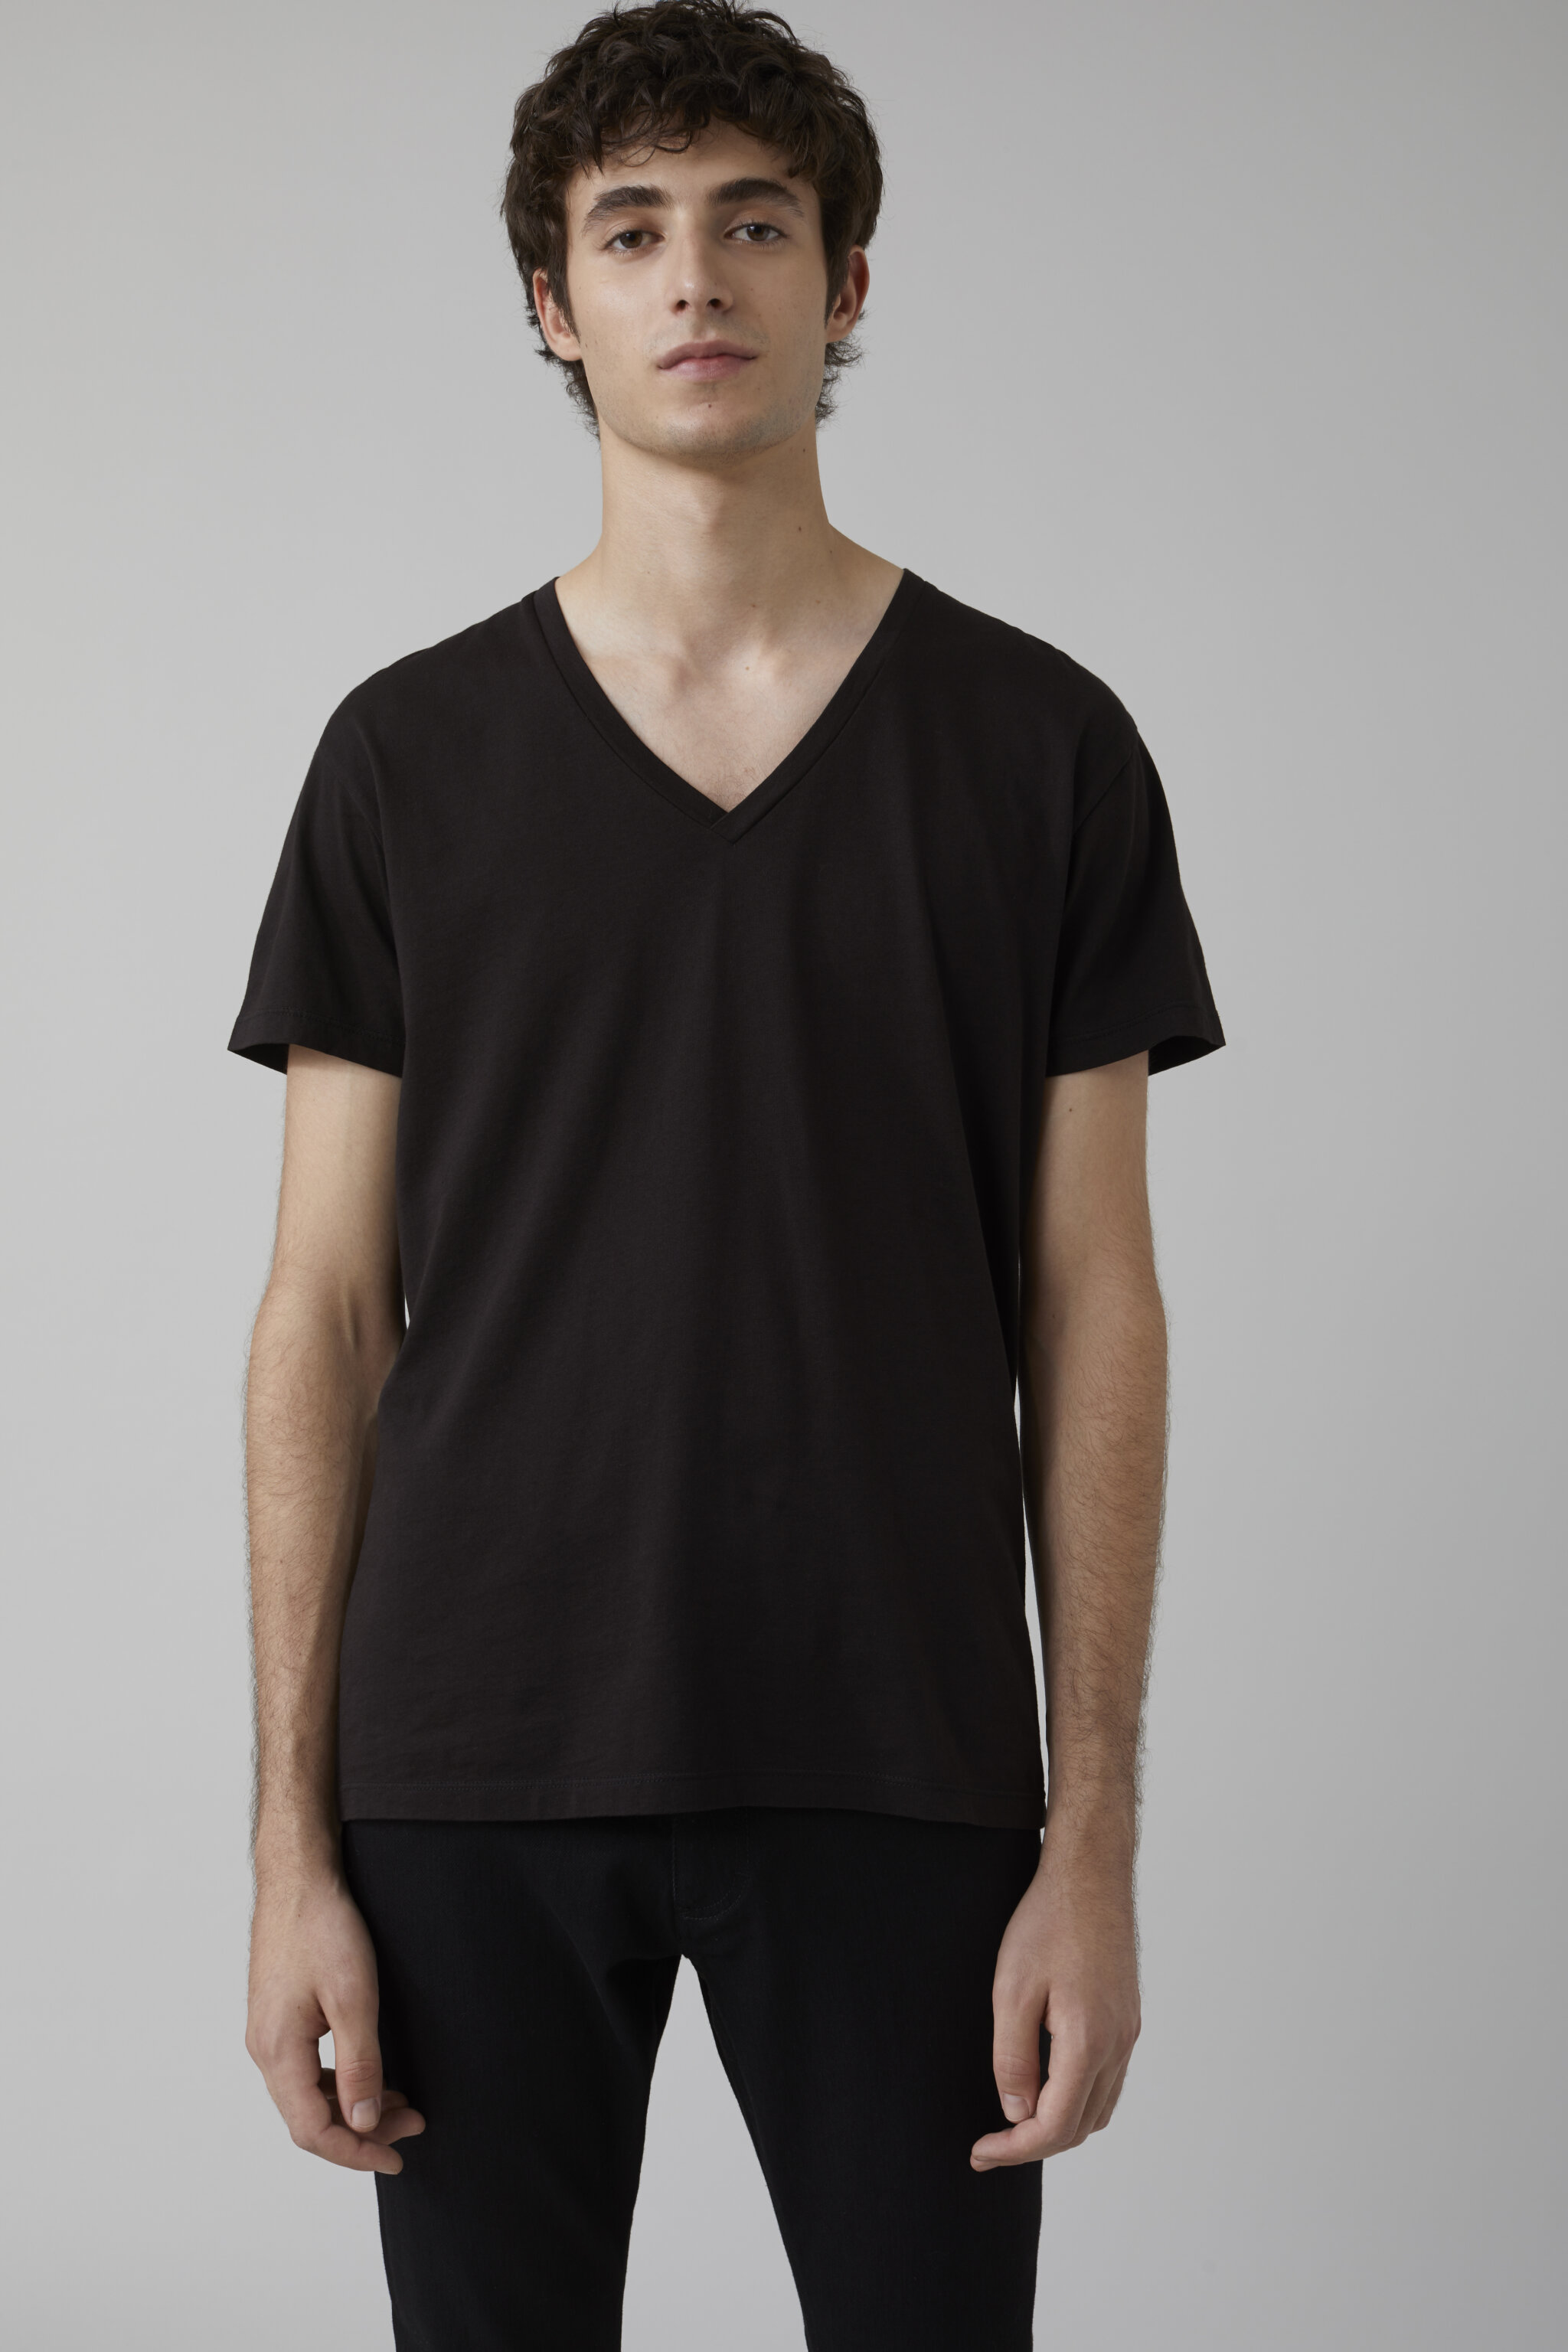 Herren CLOSED Basic V-Neck Shirt black | 4054736345412